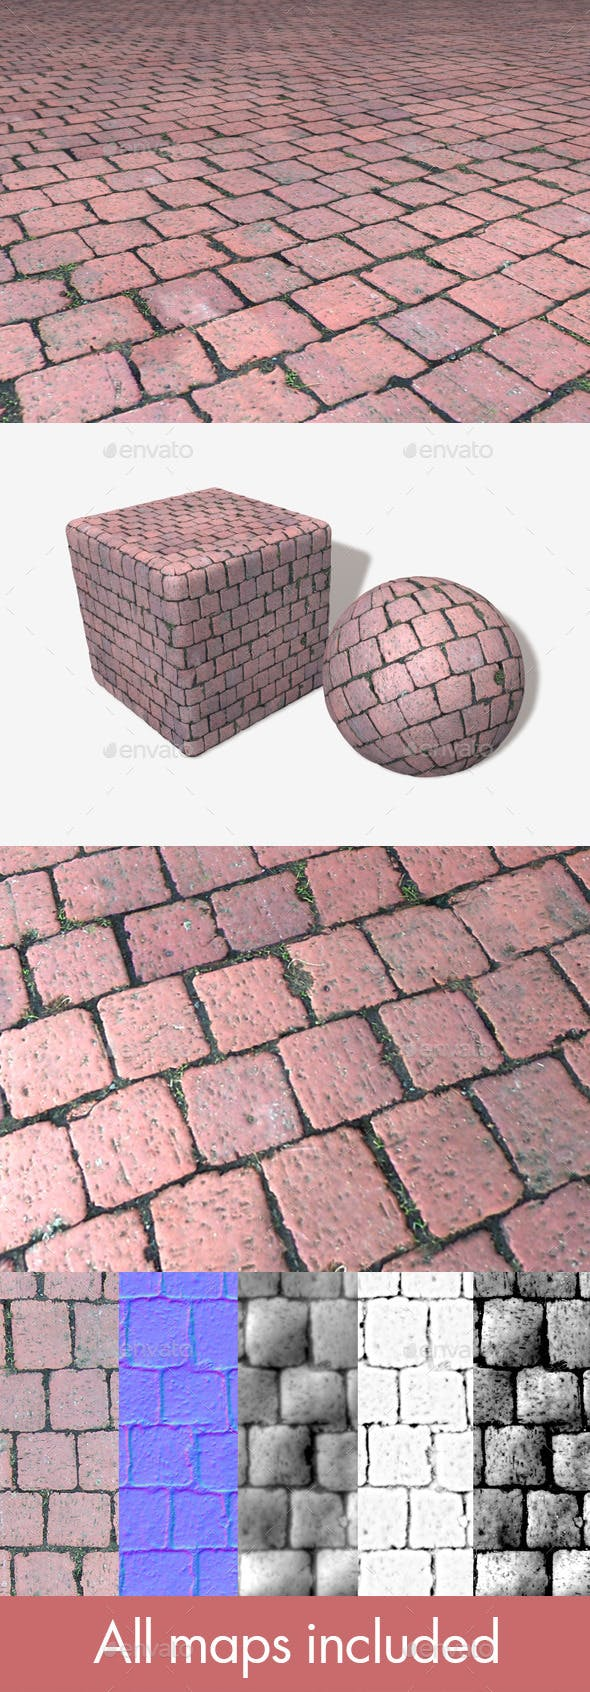 Red Cobblestone Seamless Texture - 3DOcean Item for Sale